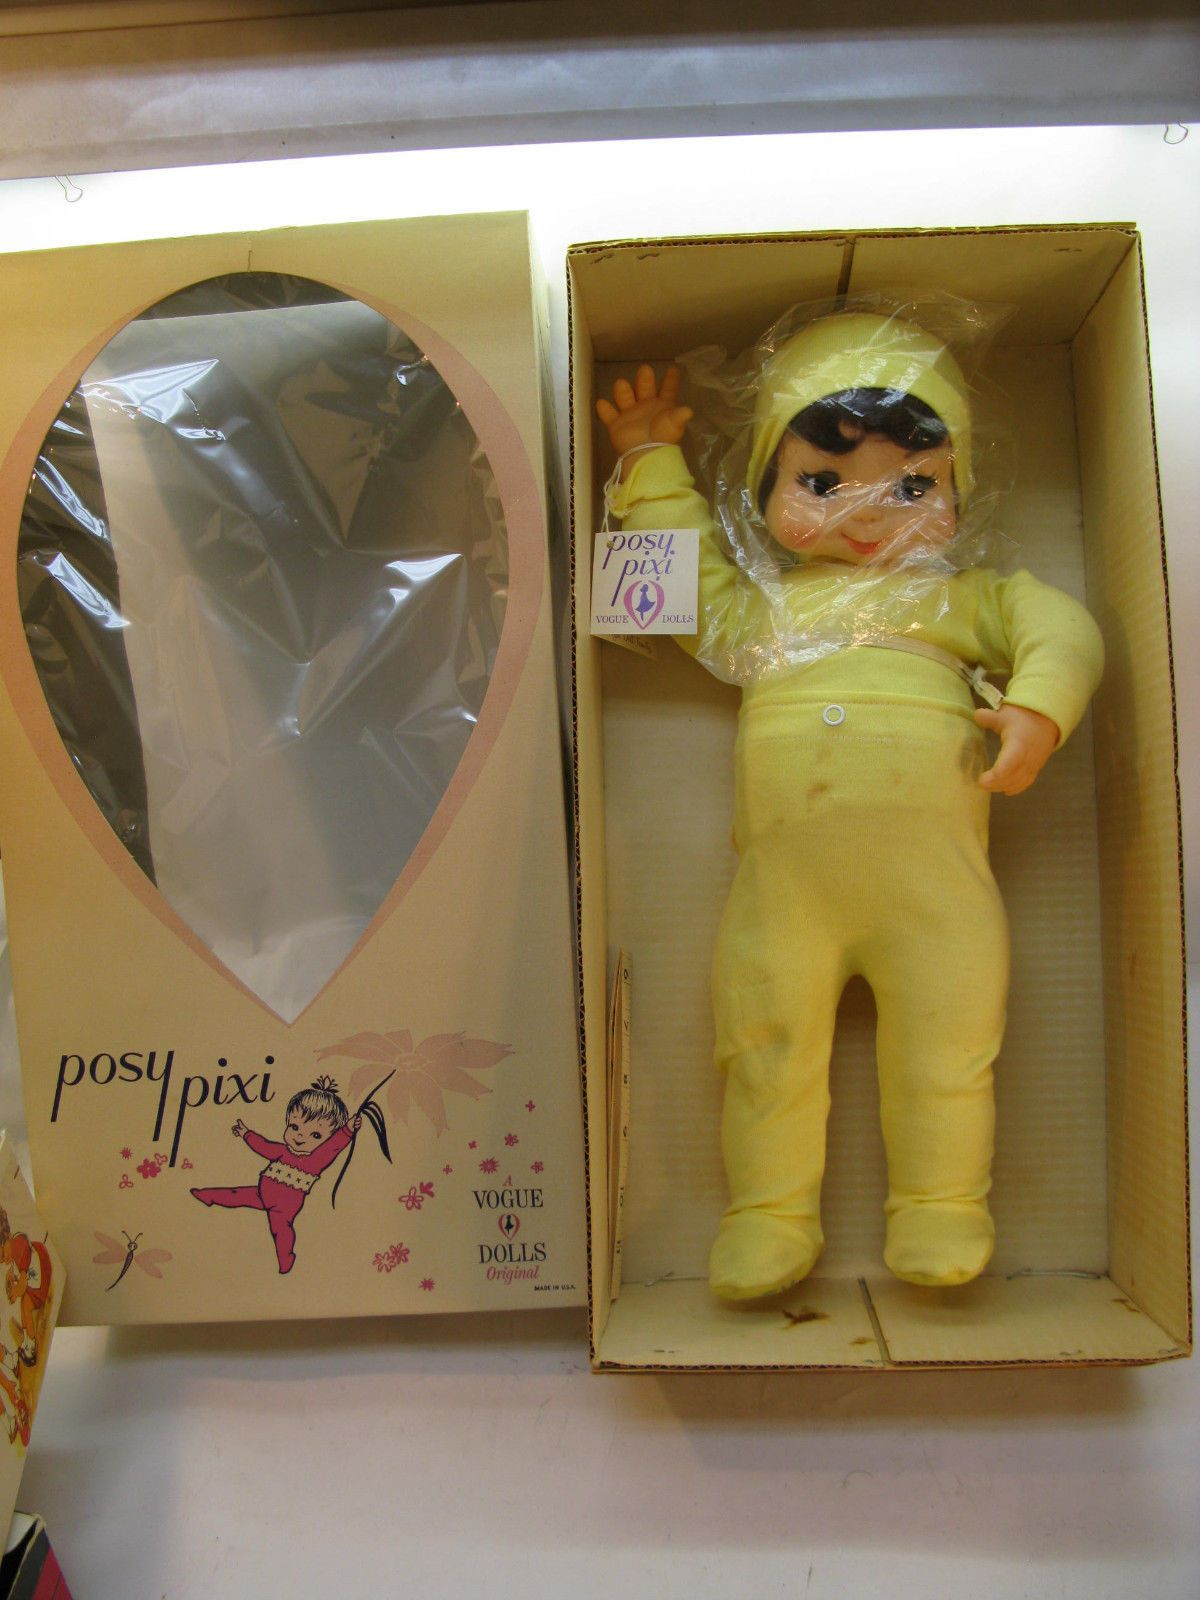 Details About Vintage Vogue Doll Posy Pixi Pixie 17in